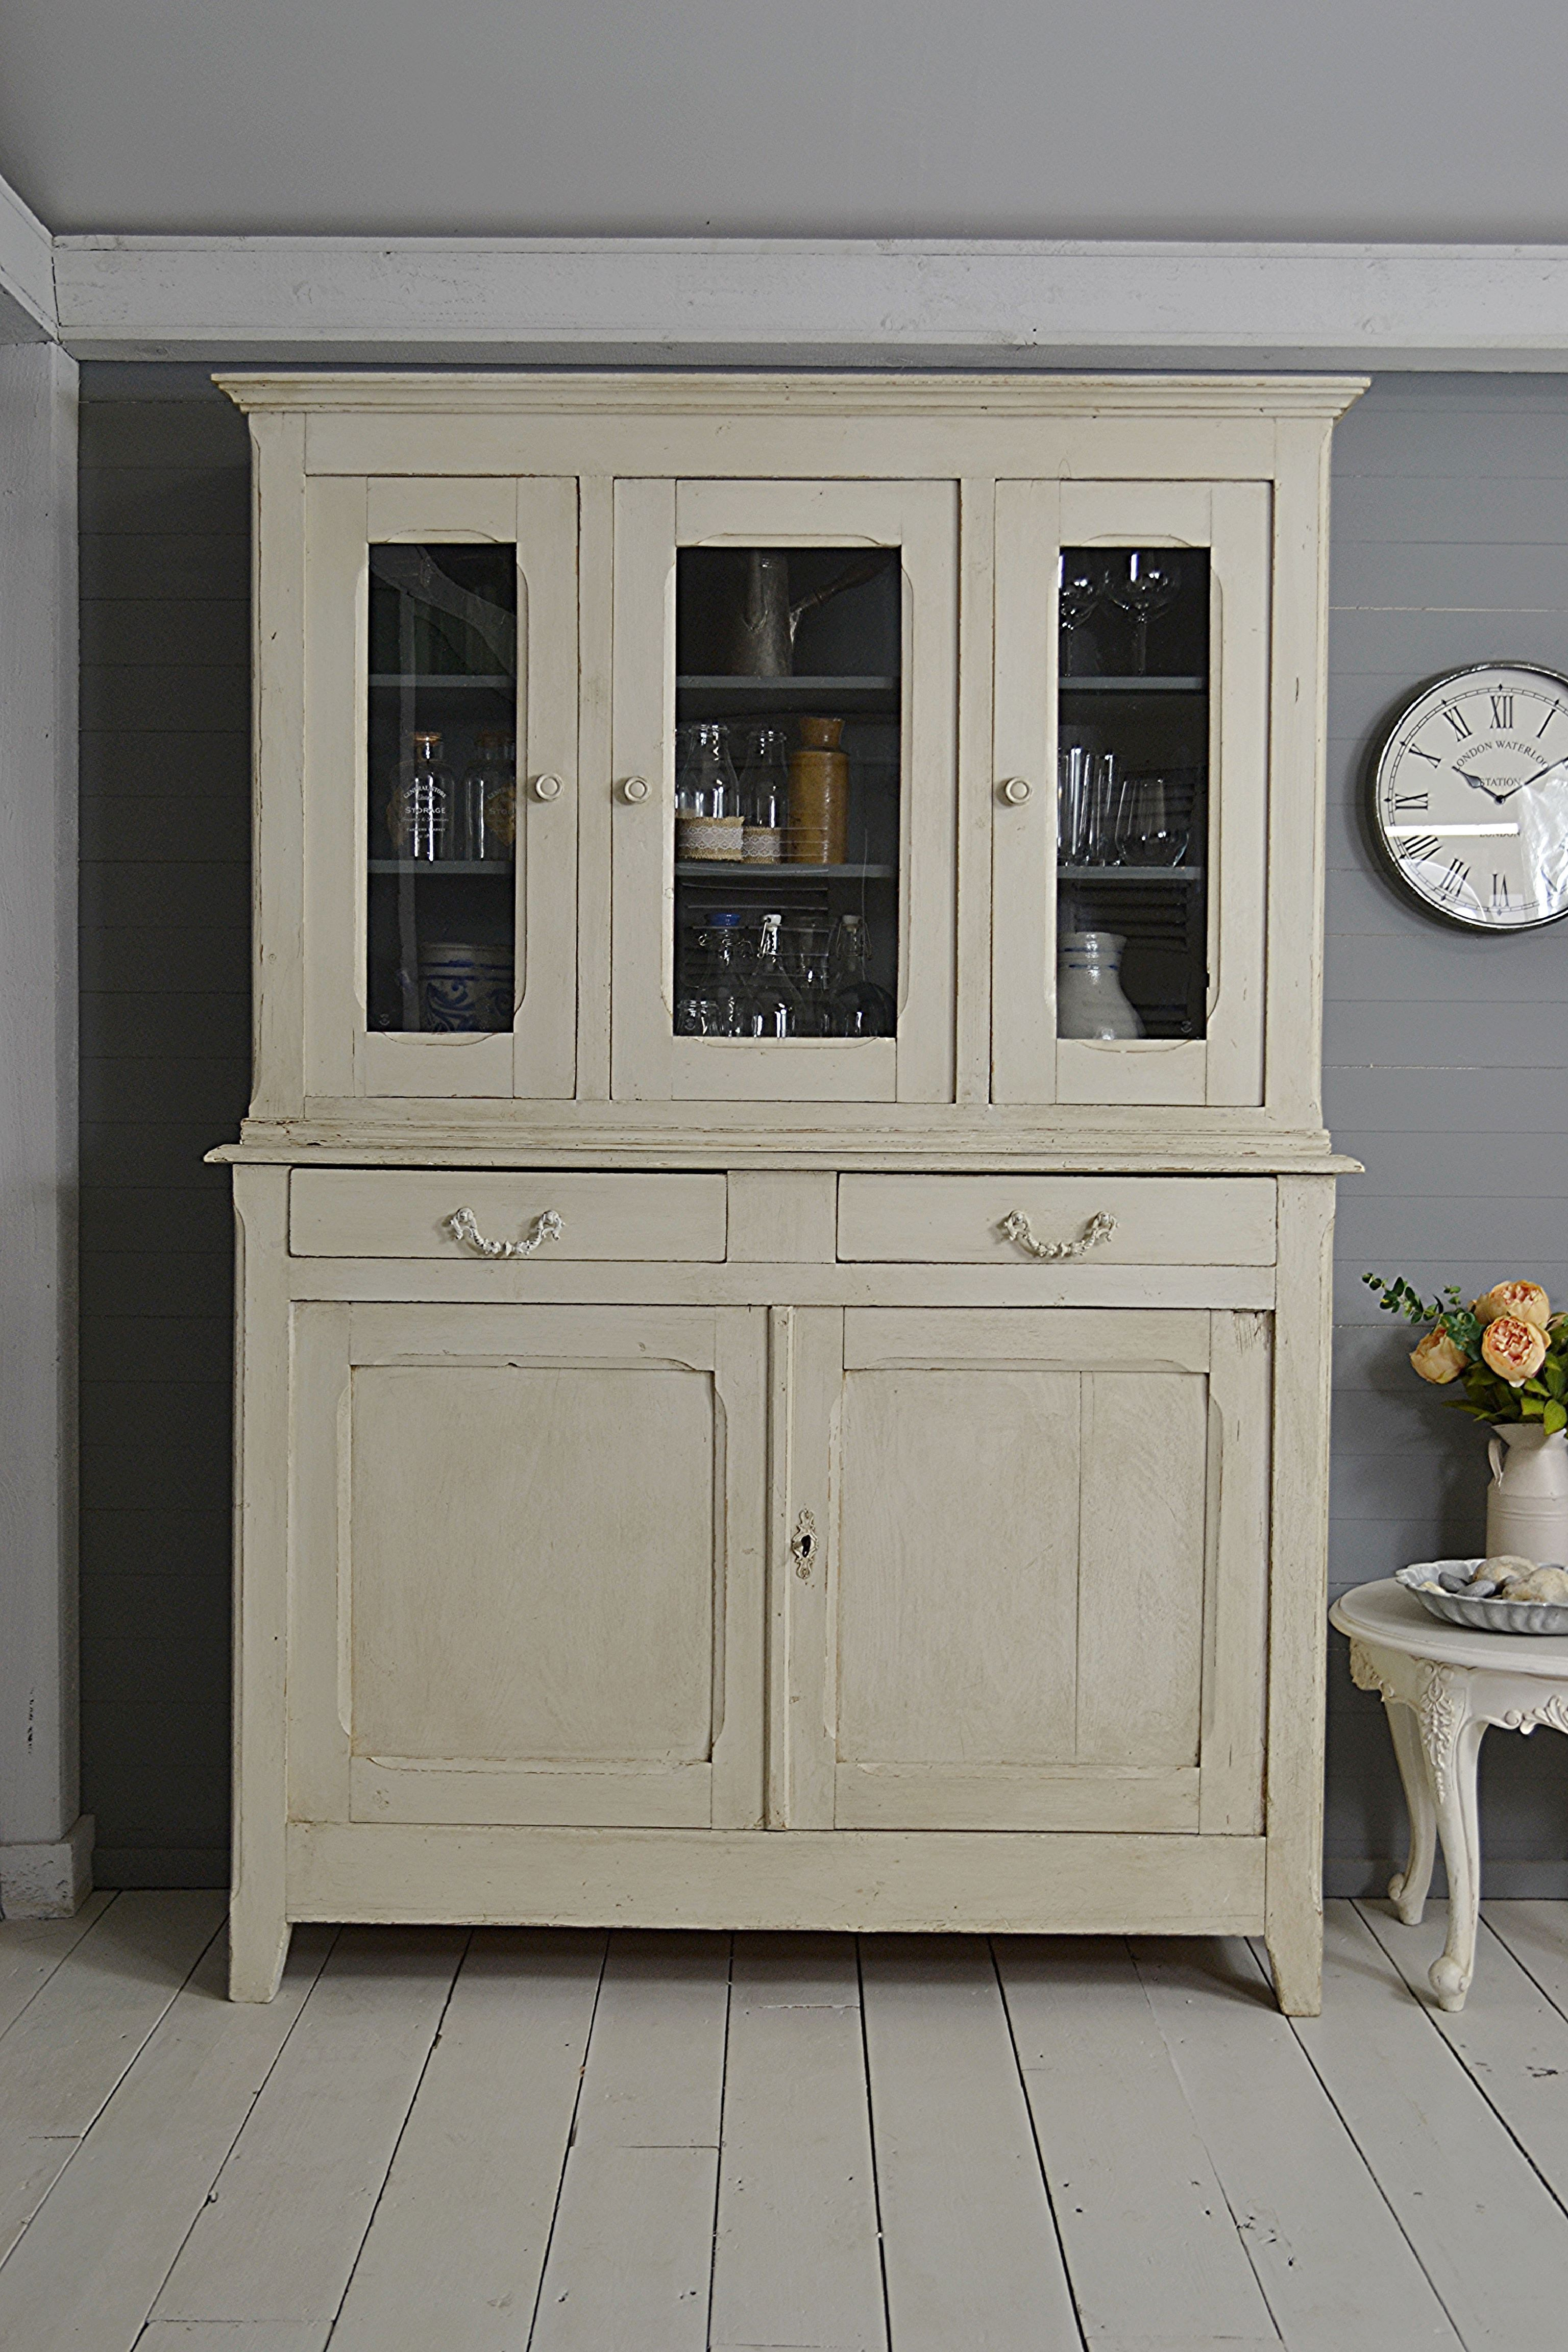 Letstrove rustic french pine buffet perfect storage for any